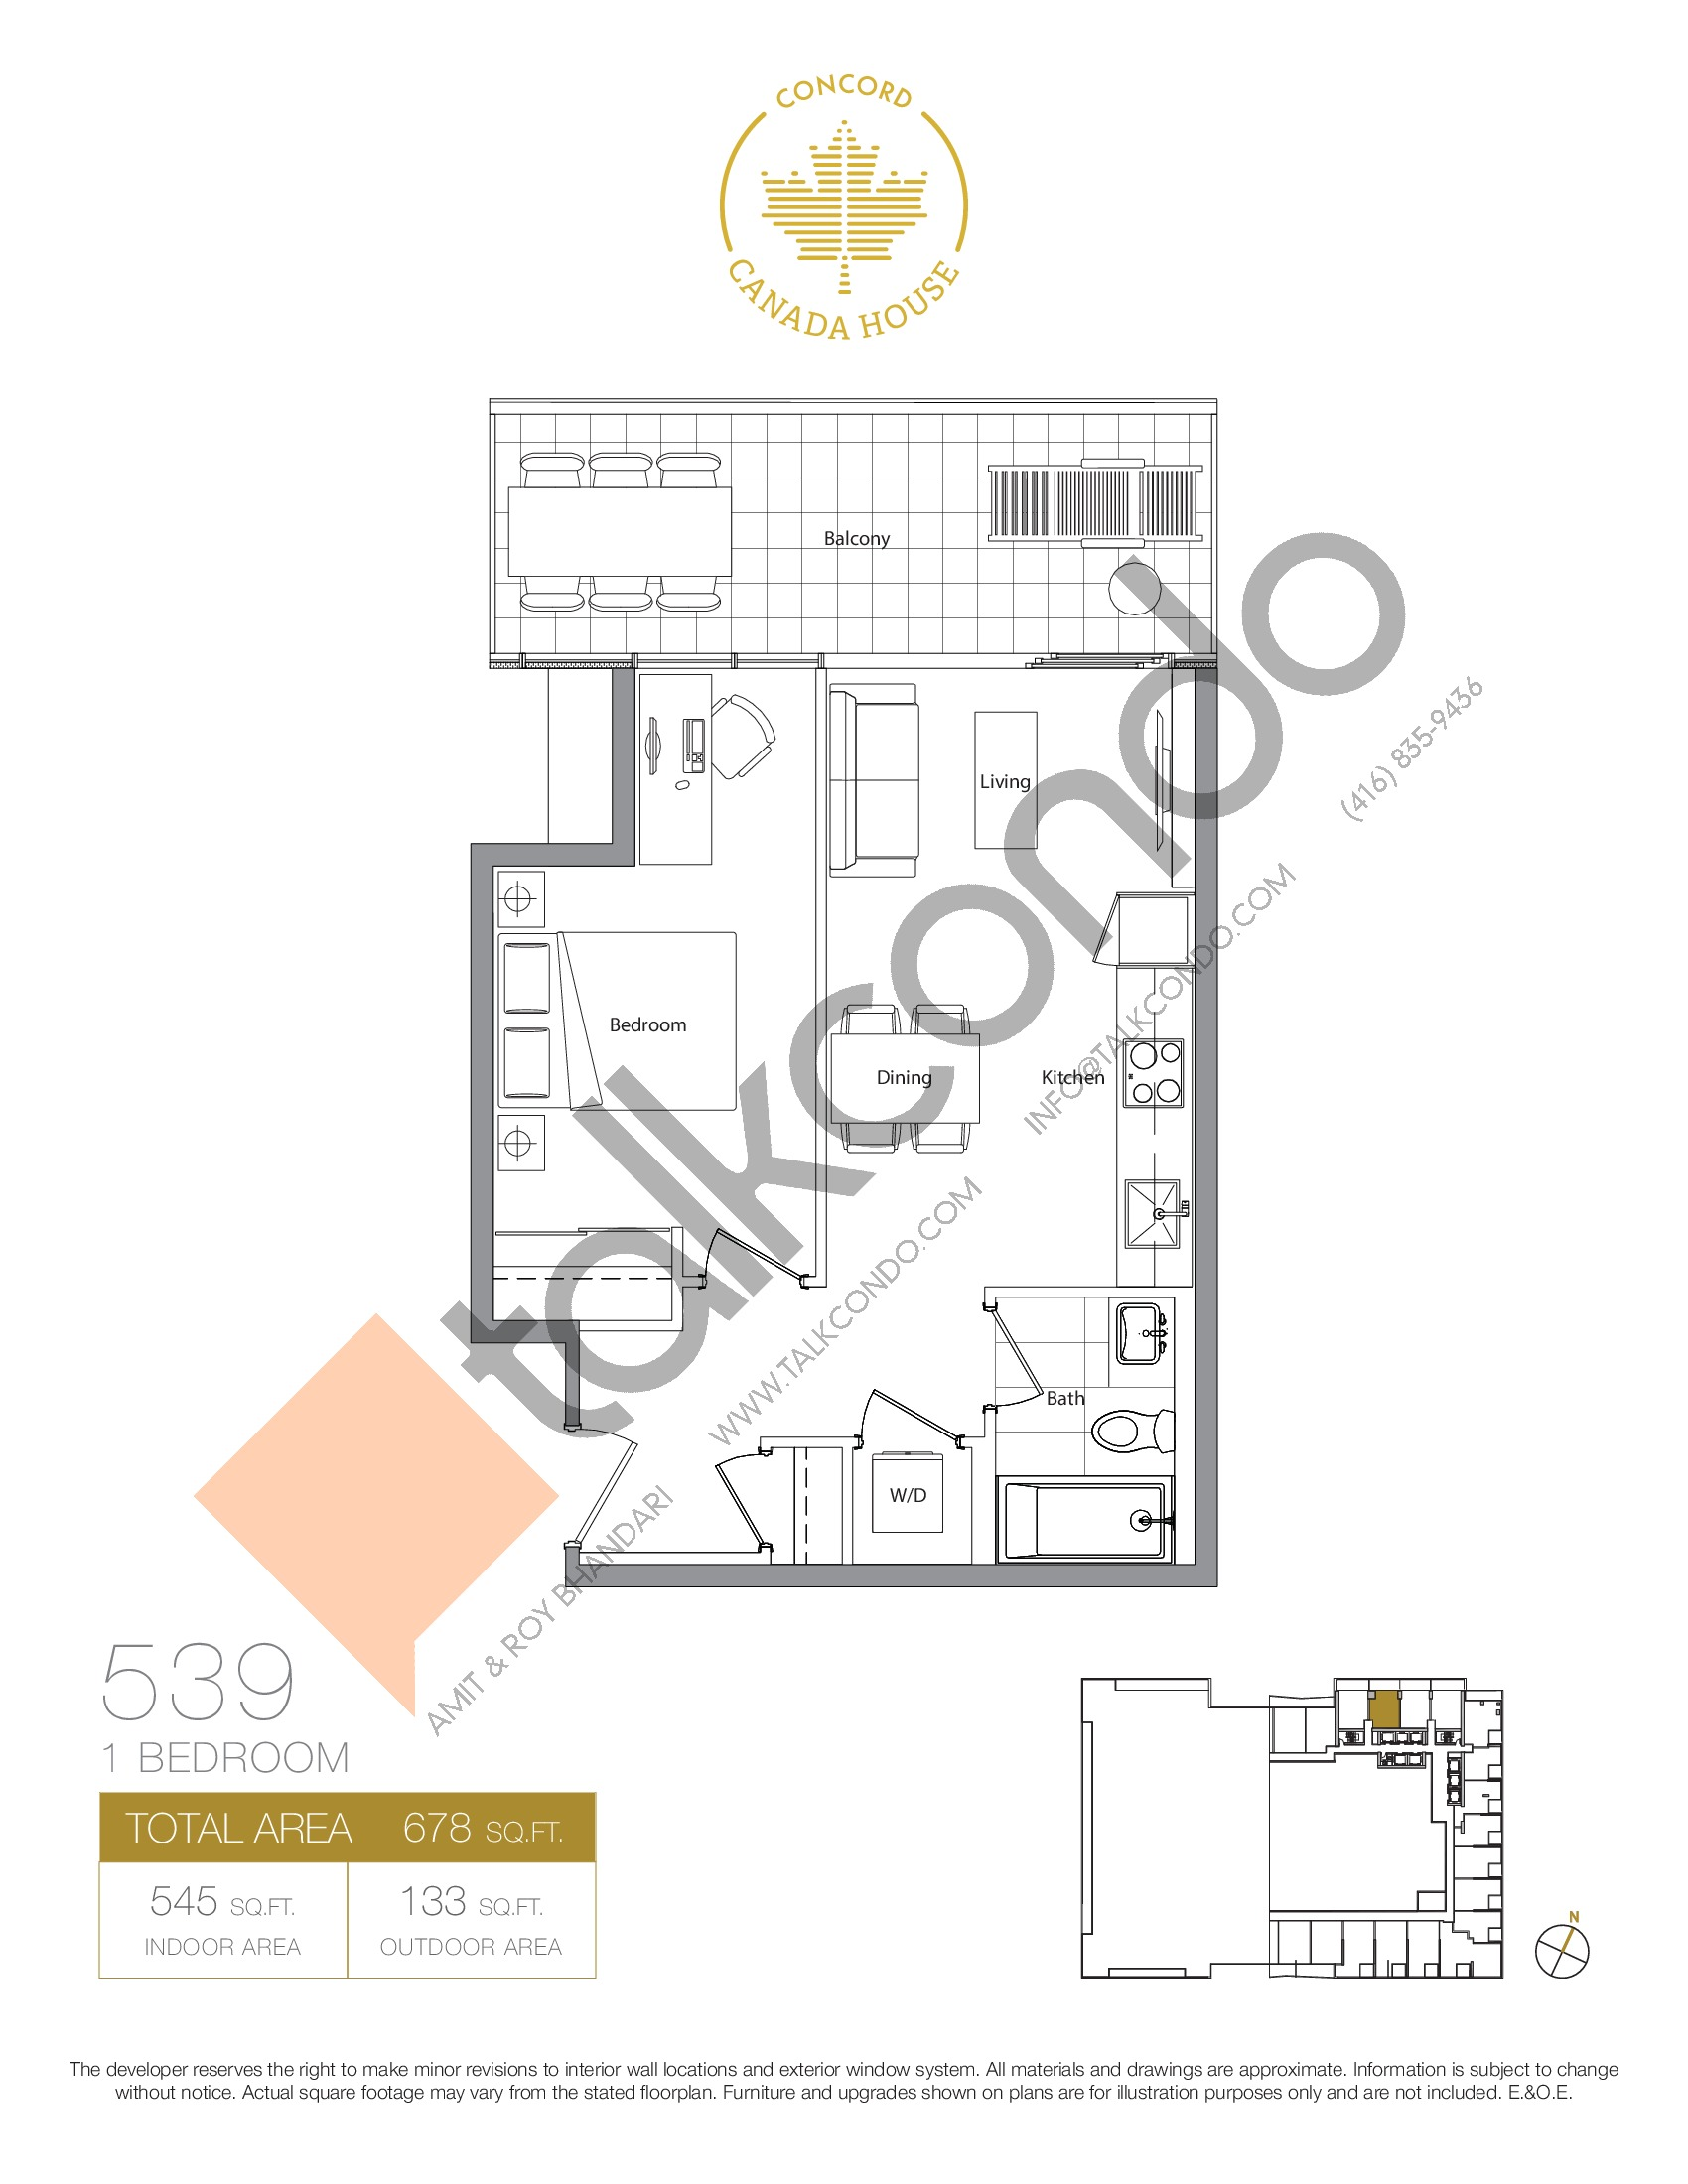 539 - East Tower Floor Plan at Concord Canada House Condos - 545 sq.ft